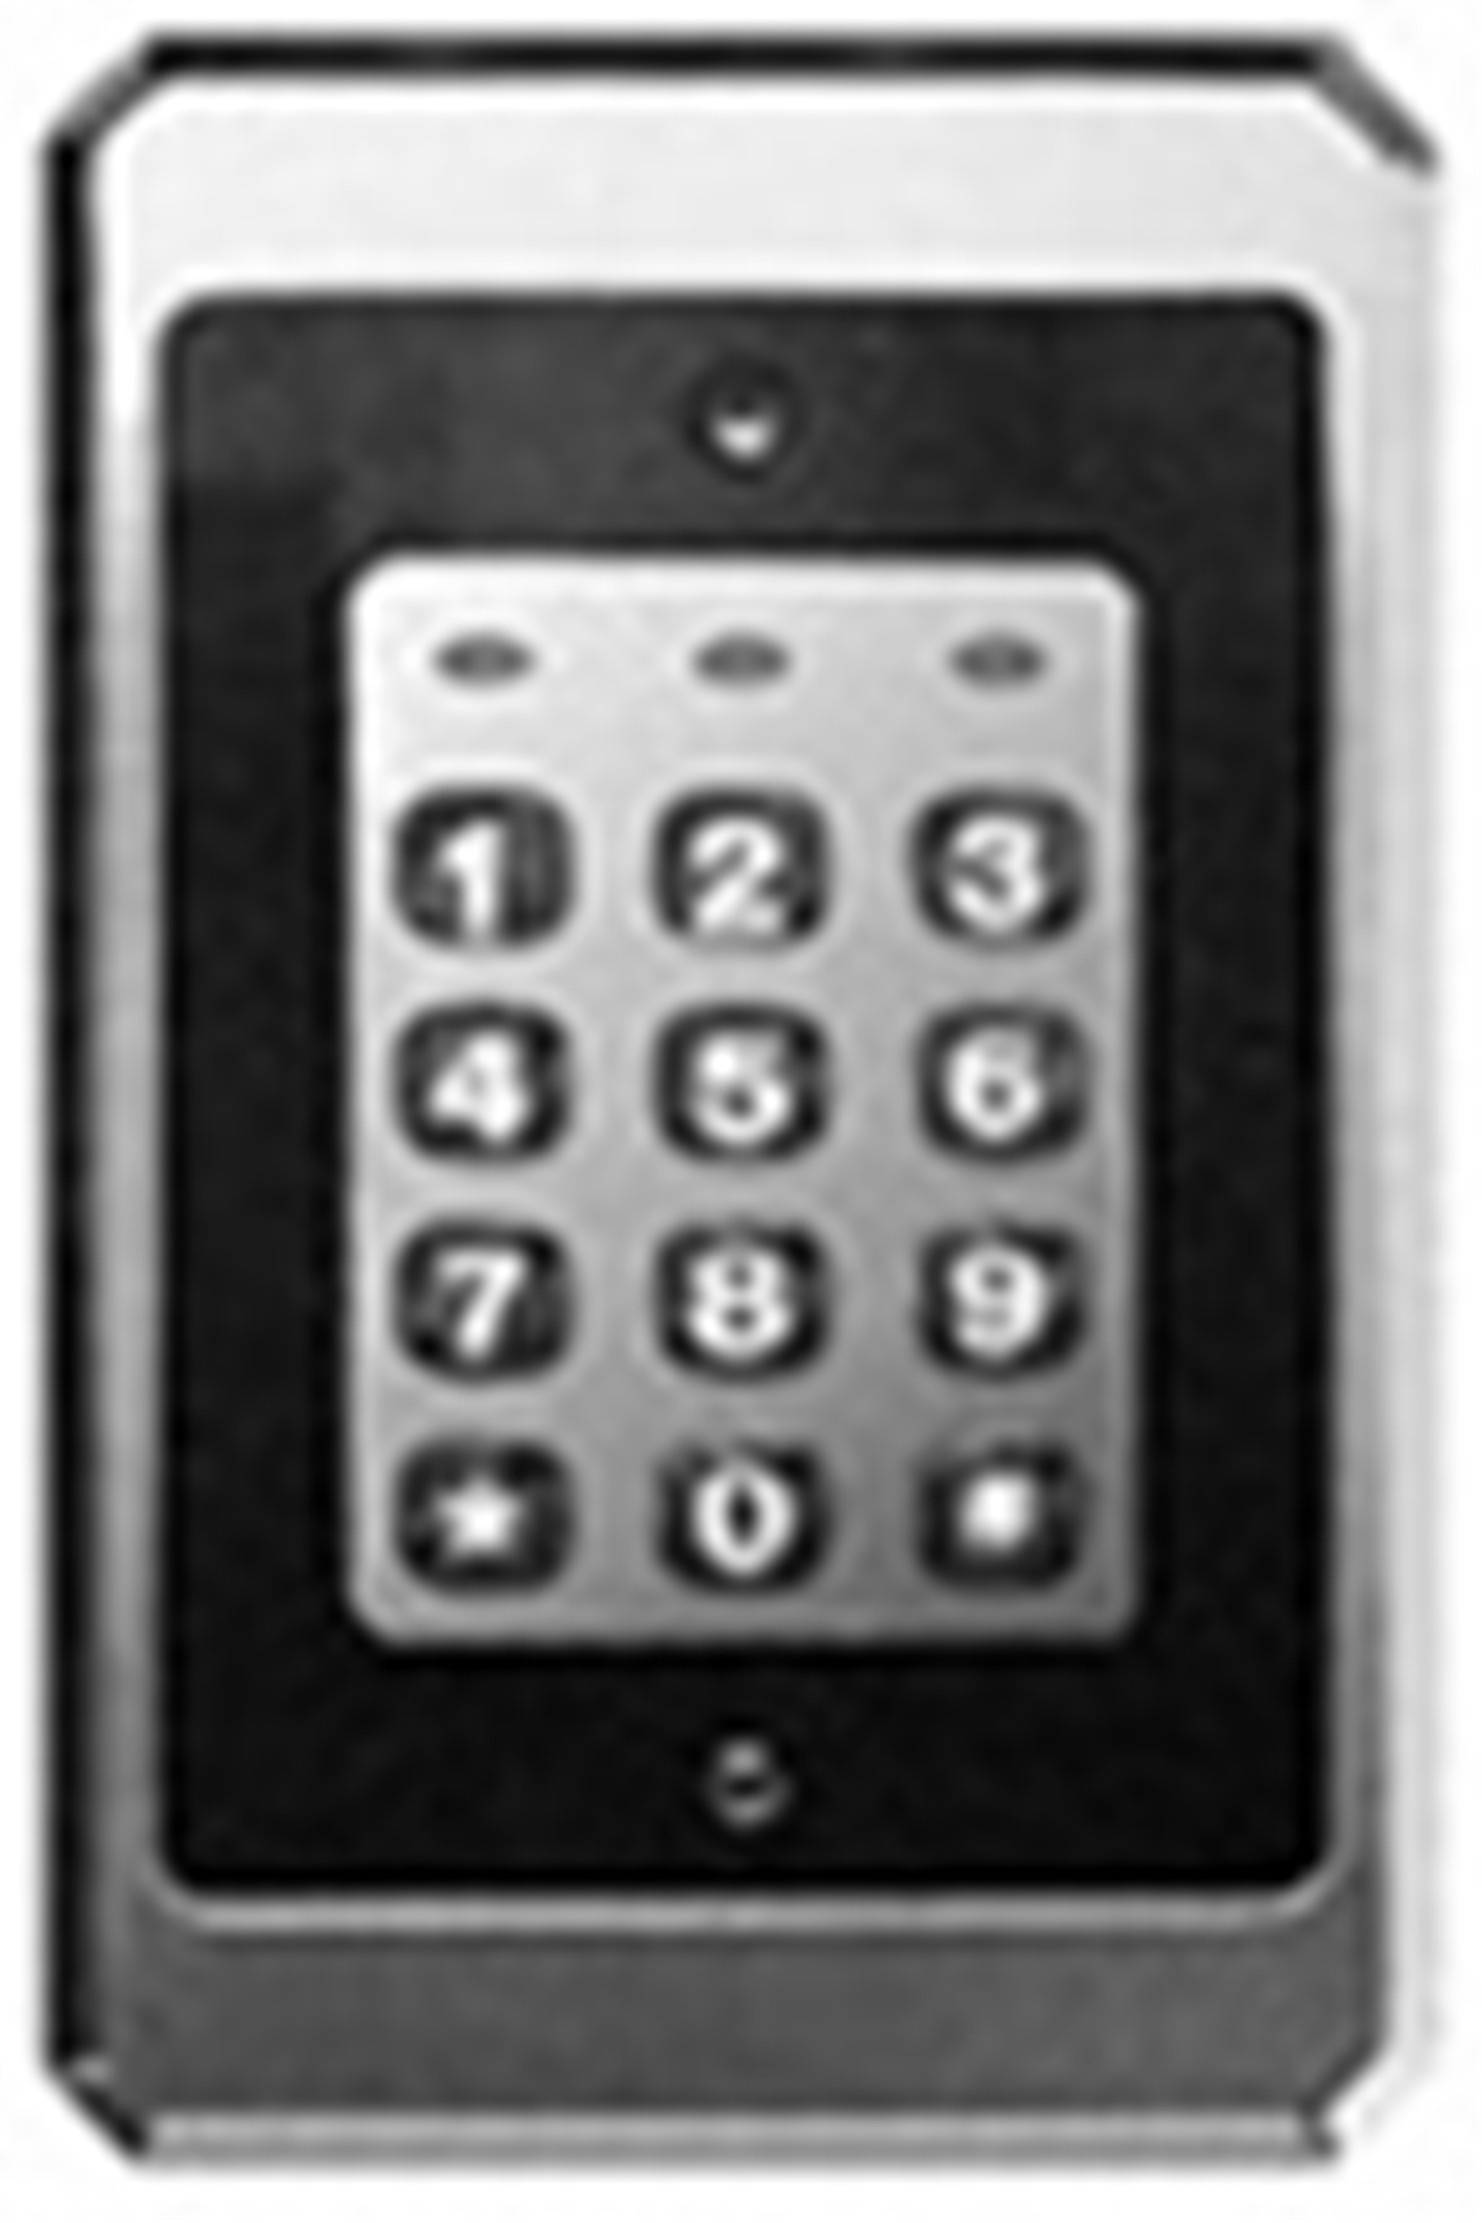 Access Control Security Company